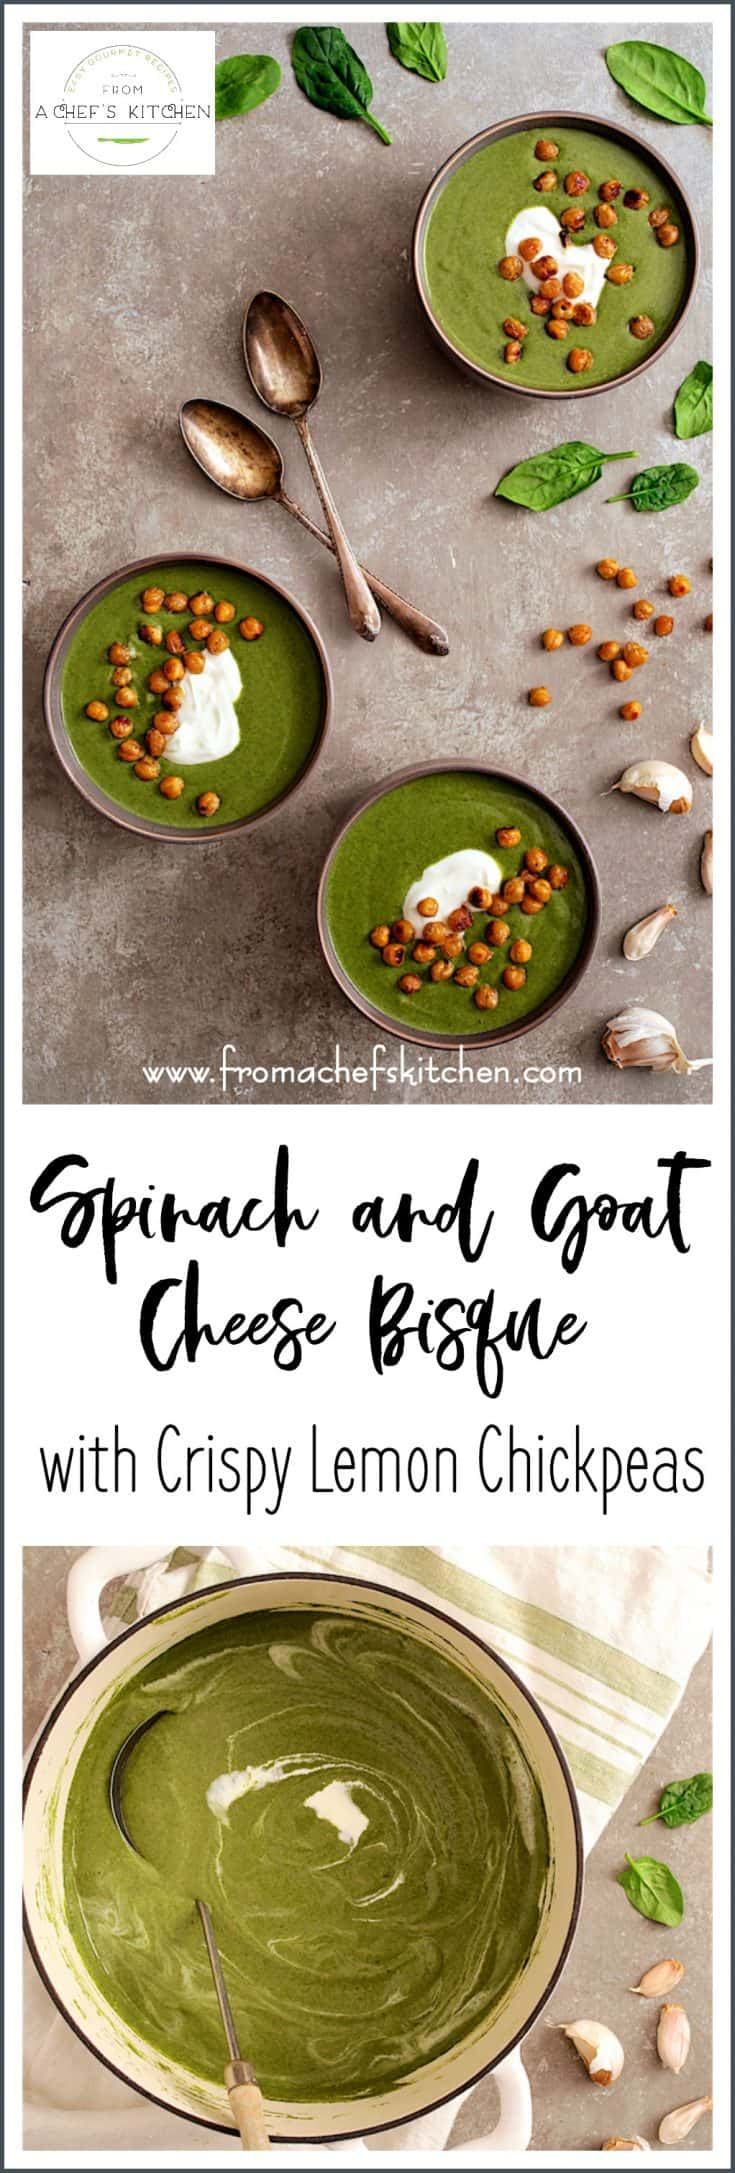 Spinach Goat Cheese Bisque is elegant, silky and creamy with just the right amount of tanginess. Crispy Lemon Chickpeas and a dollop of Greek yogurt are the perfect toppings! #spinach #vegetable #bisque #soup #goatcheese #chickpeas